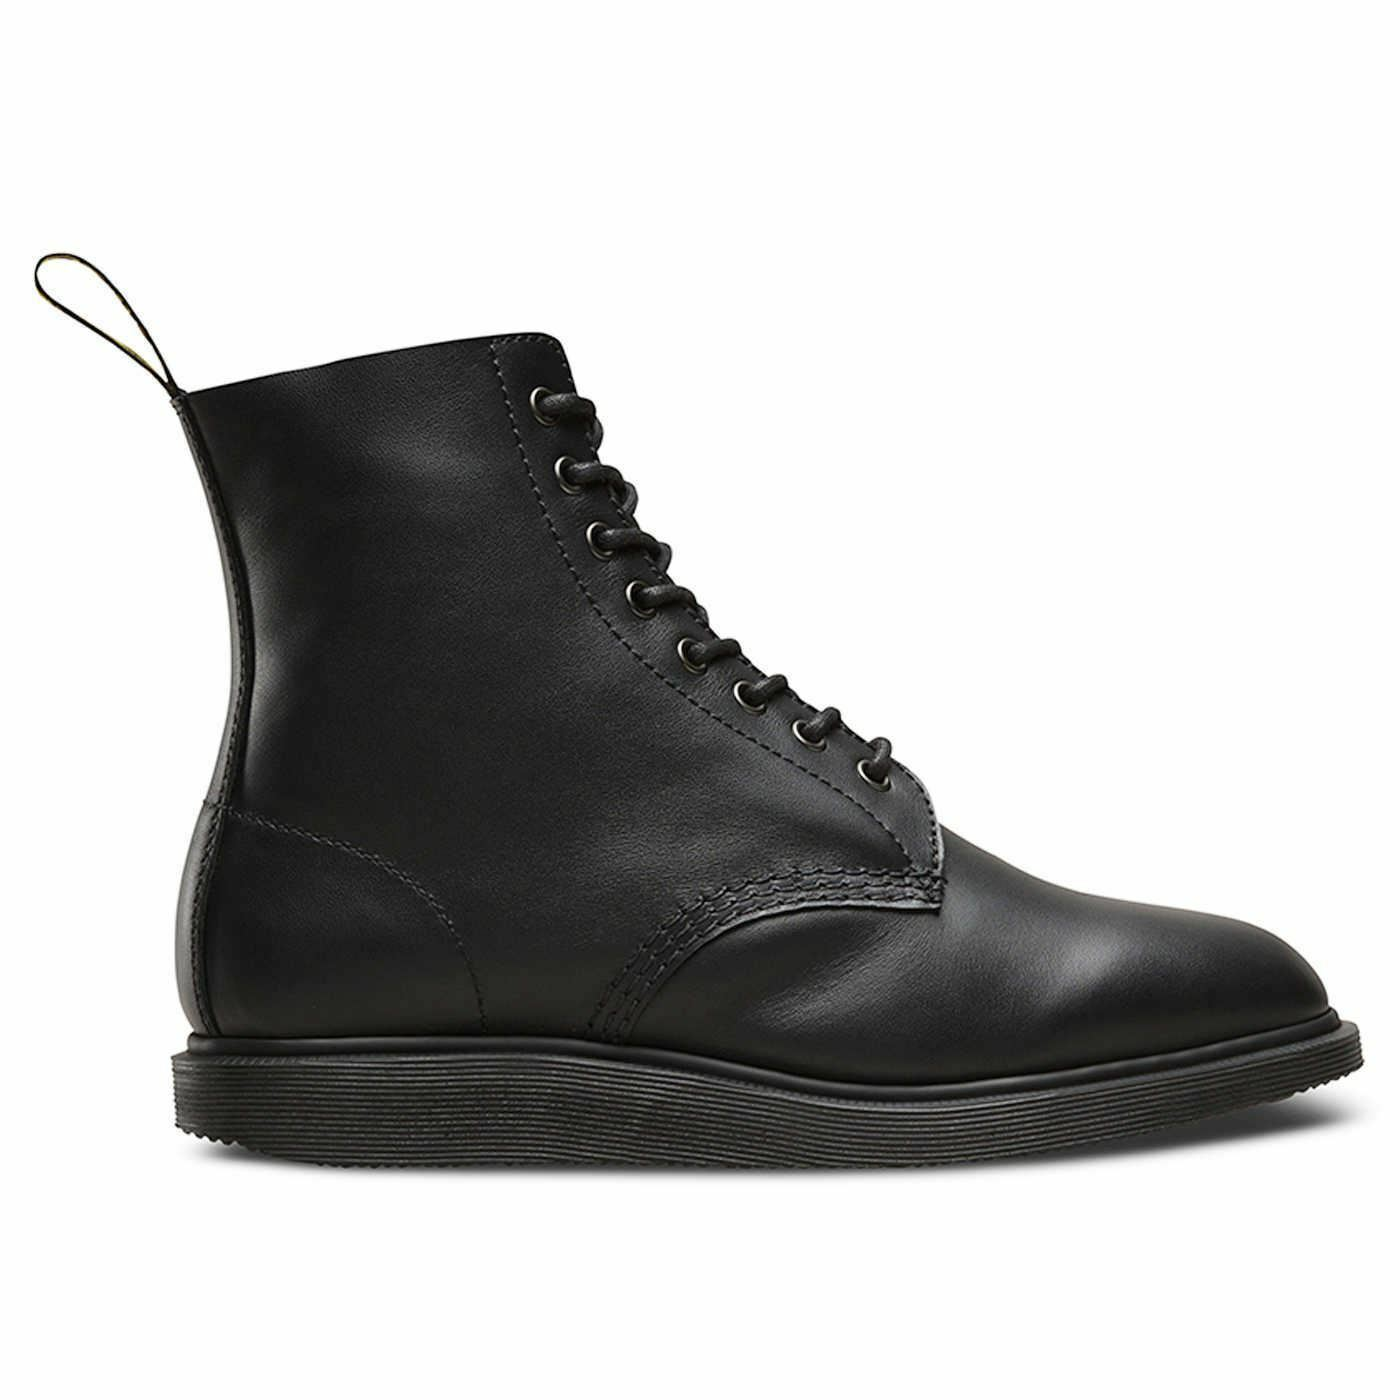 Zapatos especiales con descuento Dr.Martens Whiton 8 Eyelet Softy Treviews Black Womens Boots